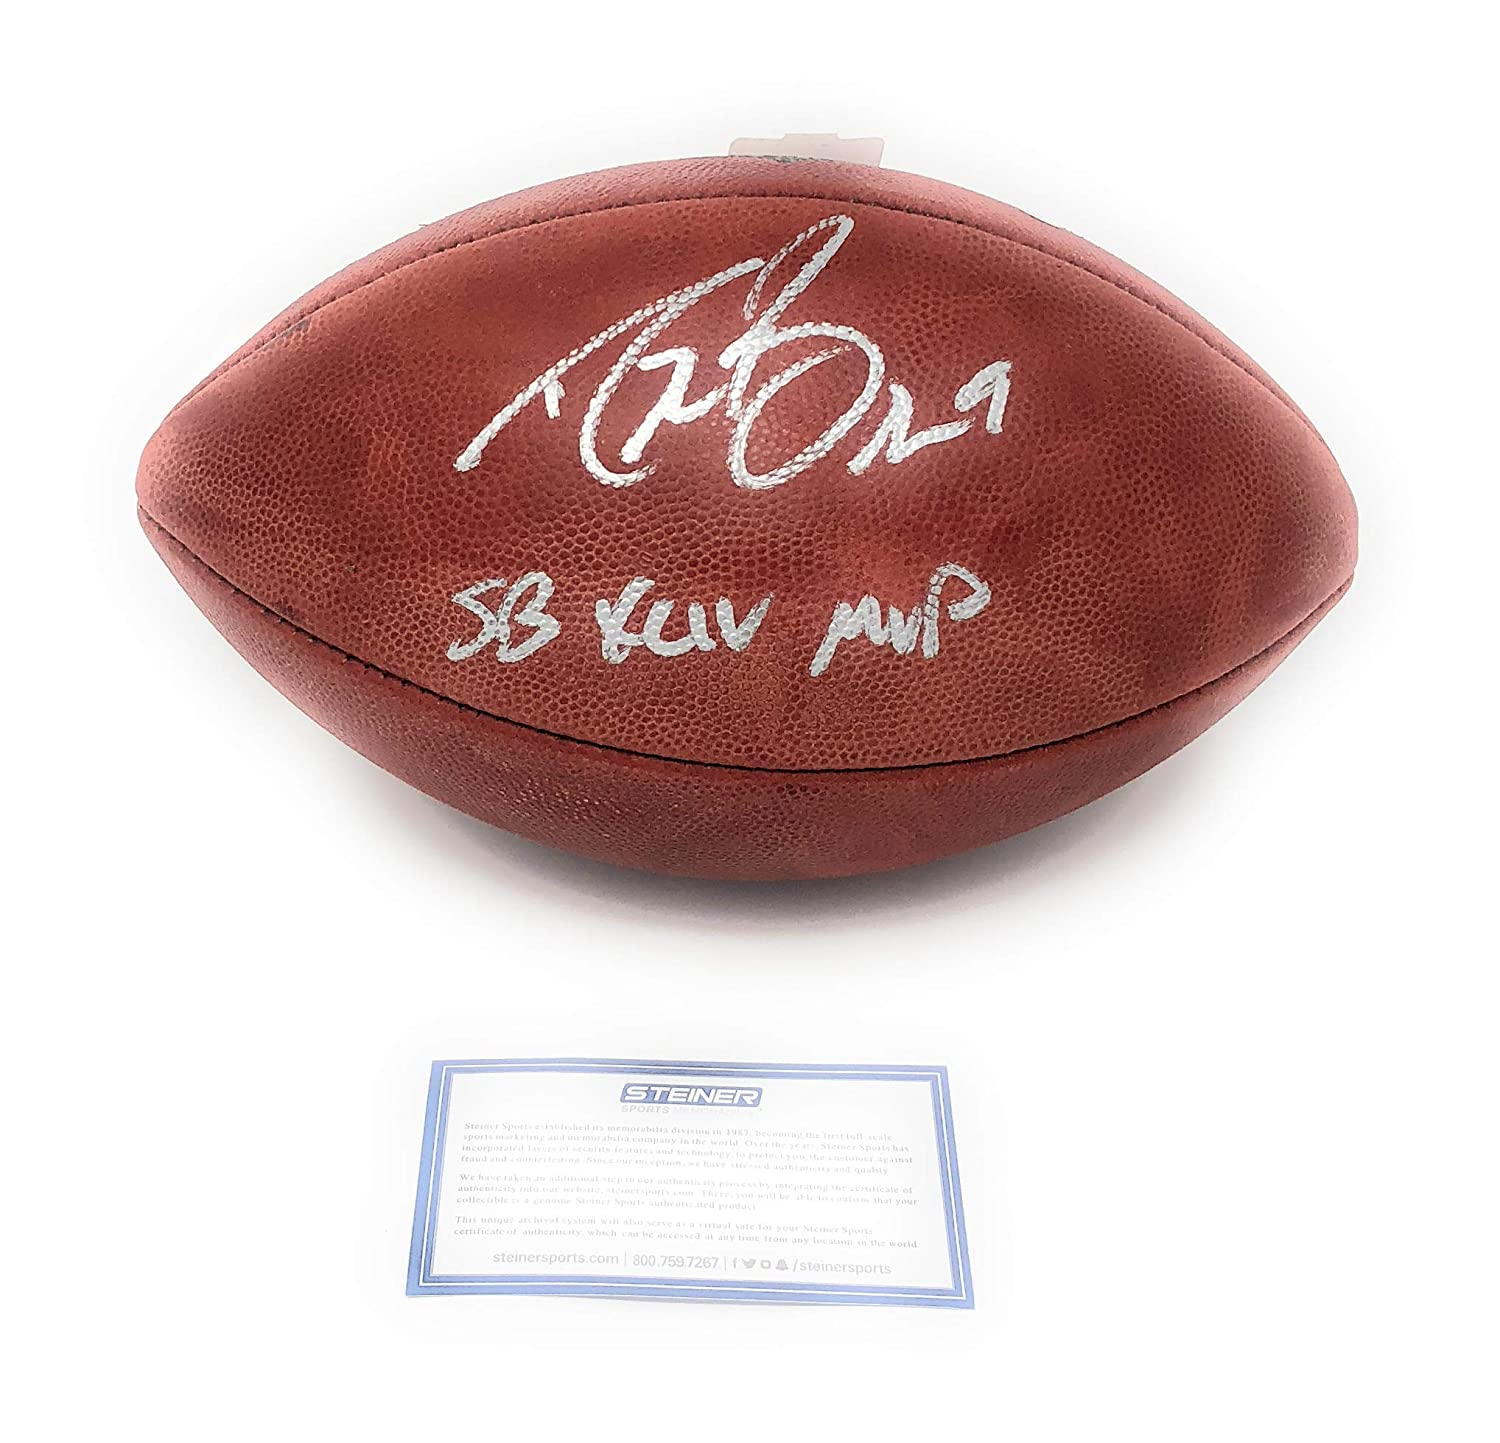 Drew Brees New Orleans Saints Signed Autograph Authentic NFL Duke Football SB XLIV MVP Inscribed Steiner Sports Certified